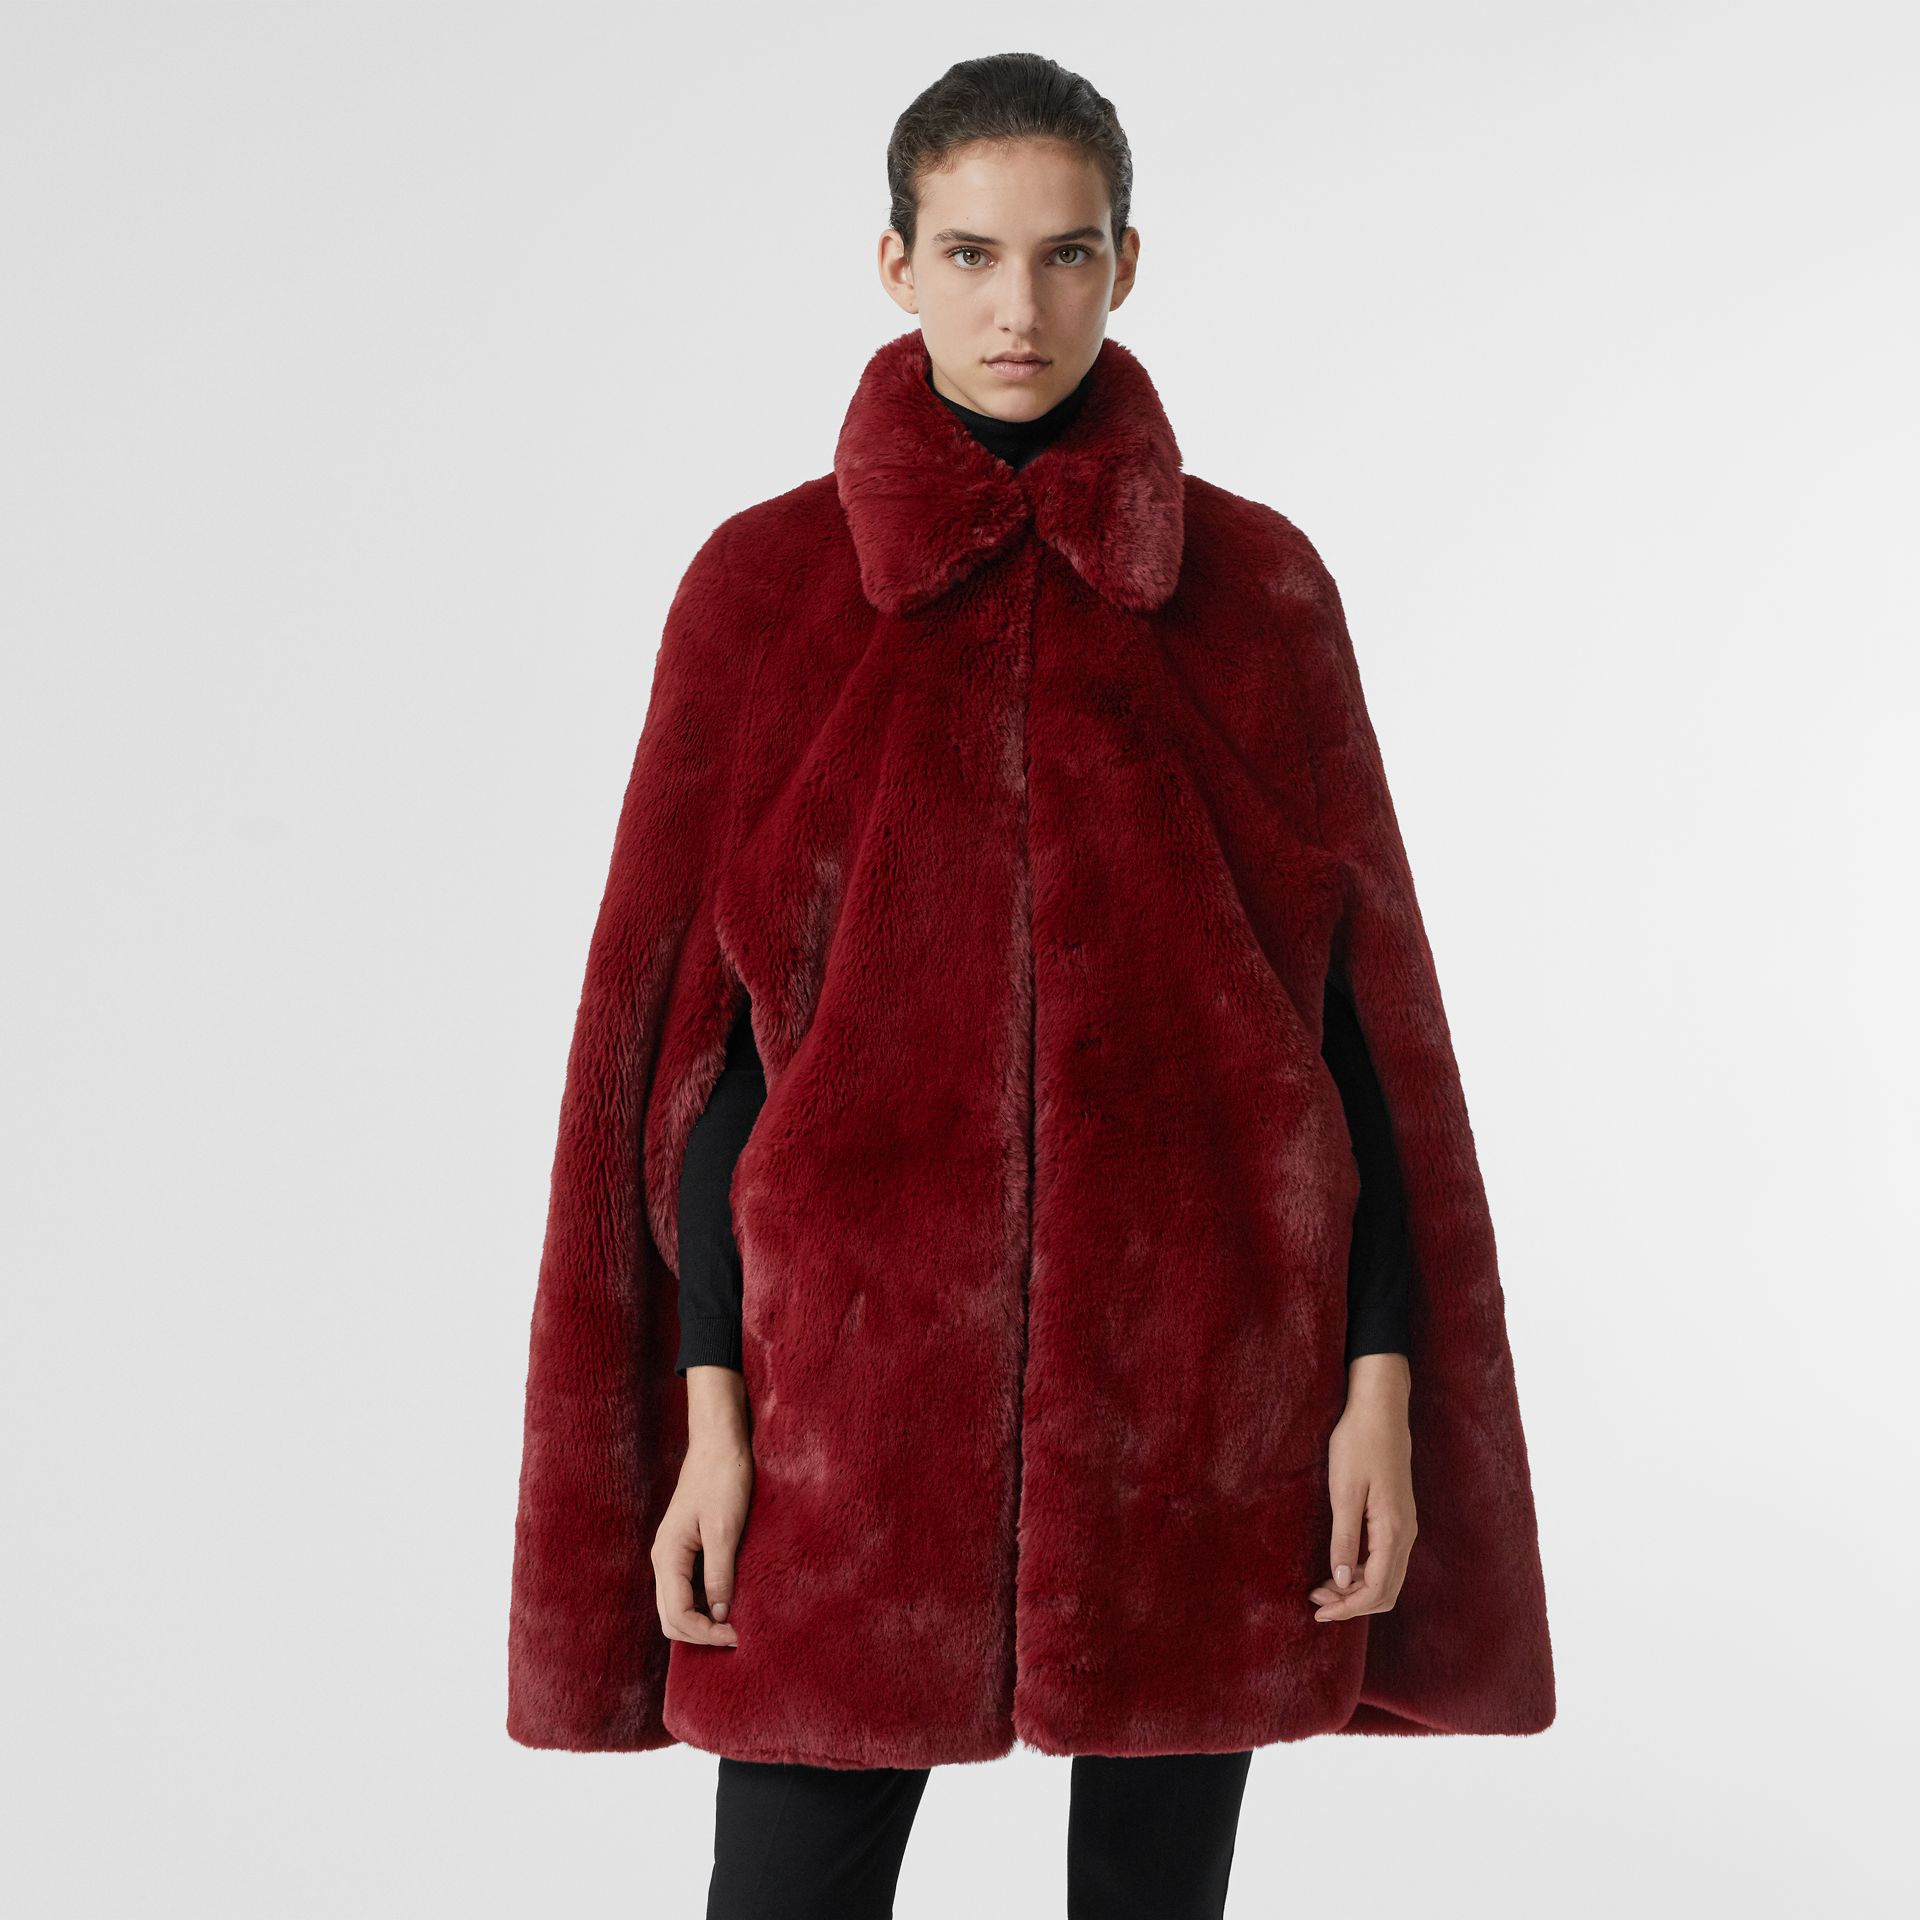 Faux Fur Cape in Burgundy - Women | Burberry Hong Kong - gallery image 4